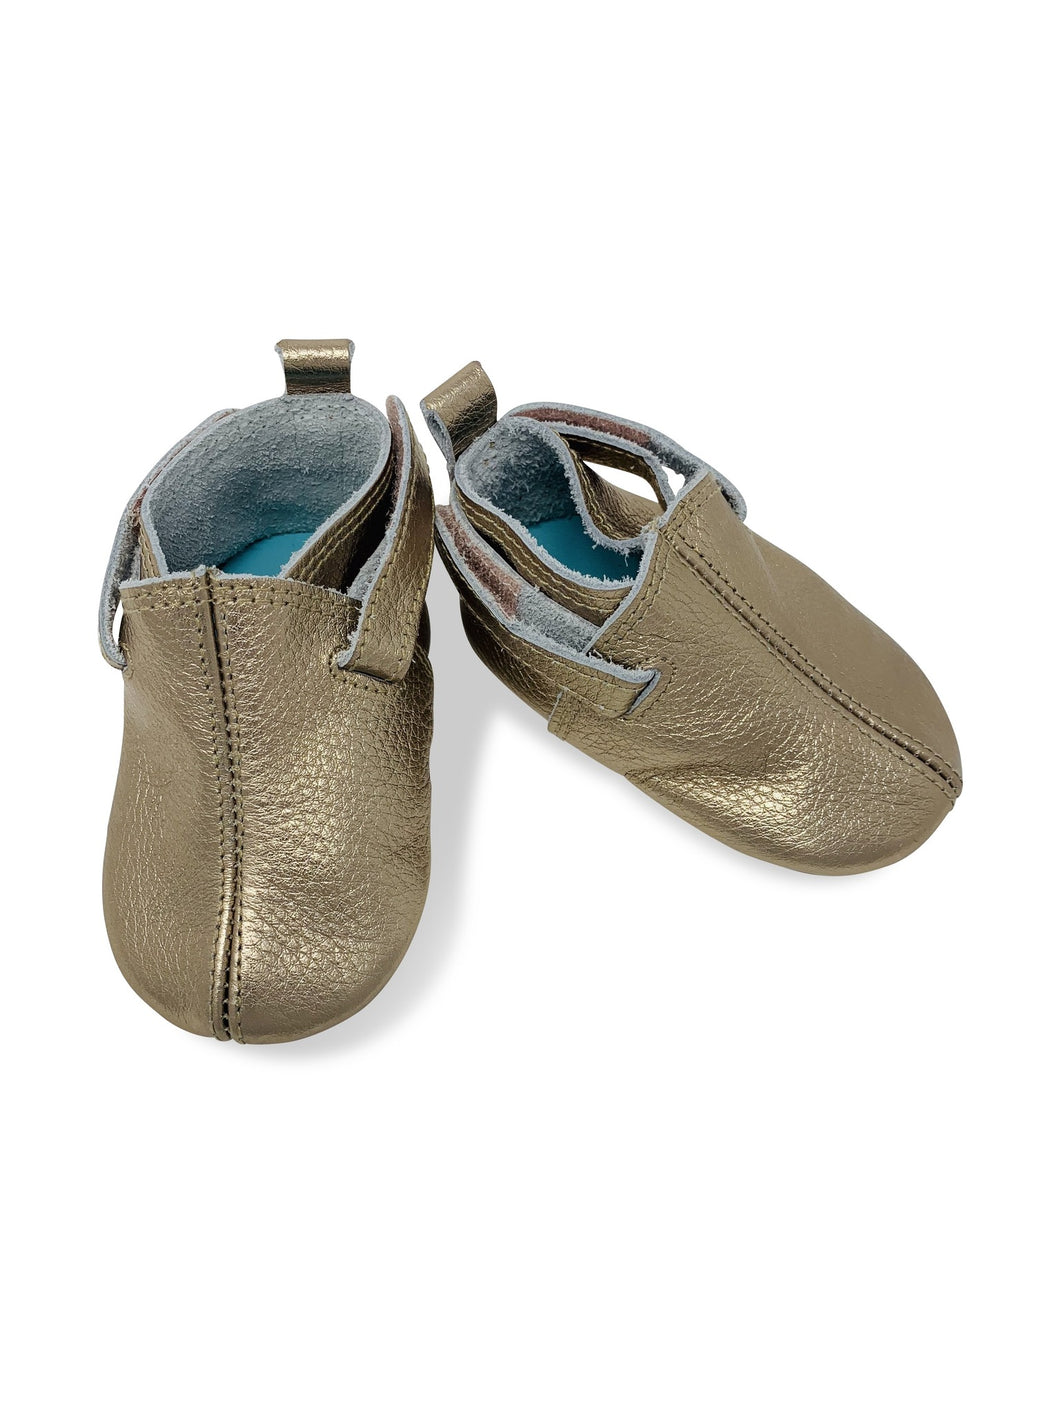 Zutano leather crib shoe